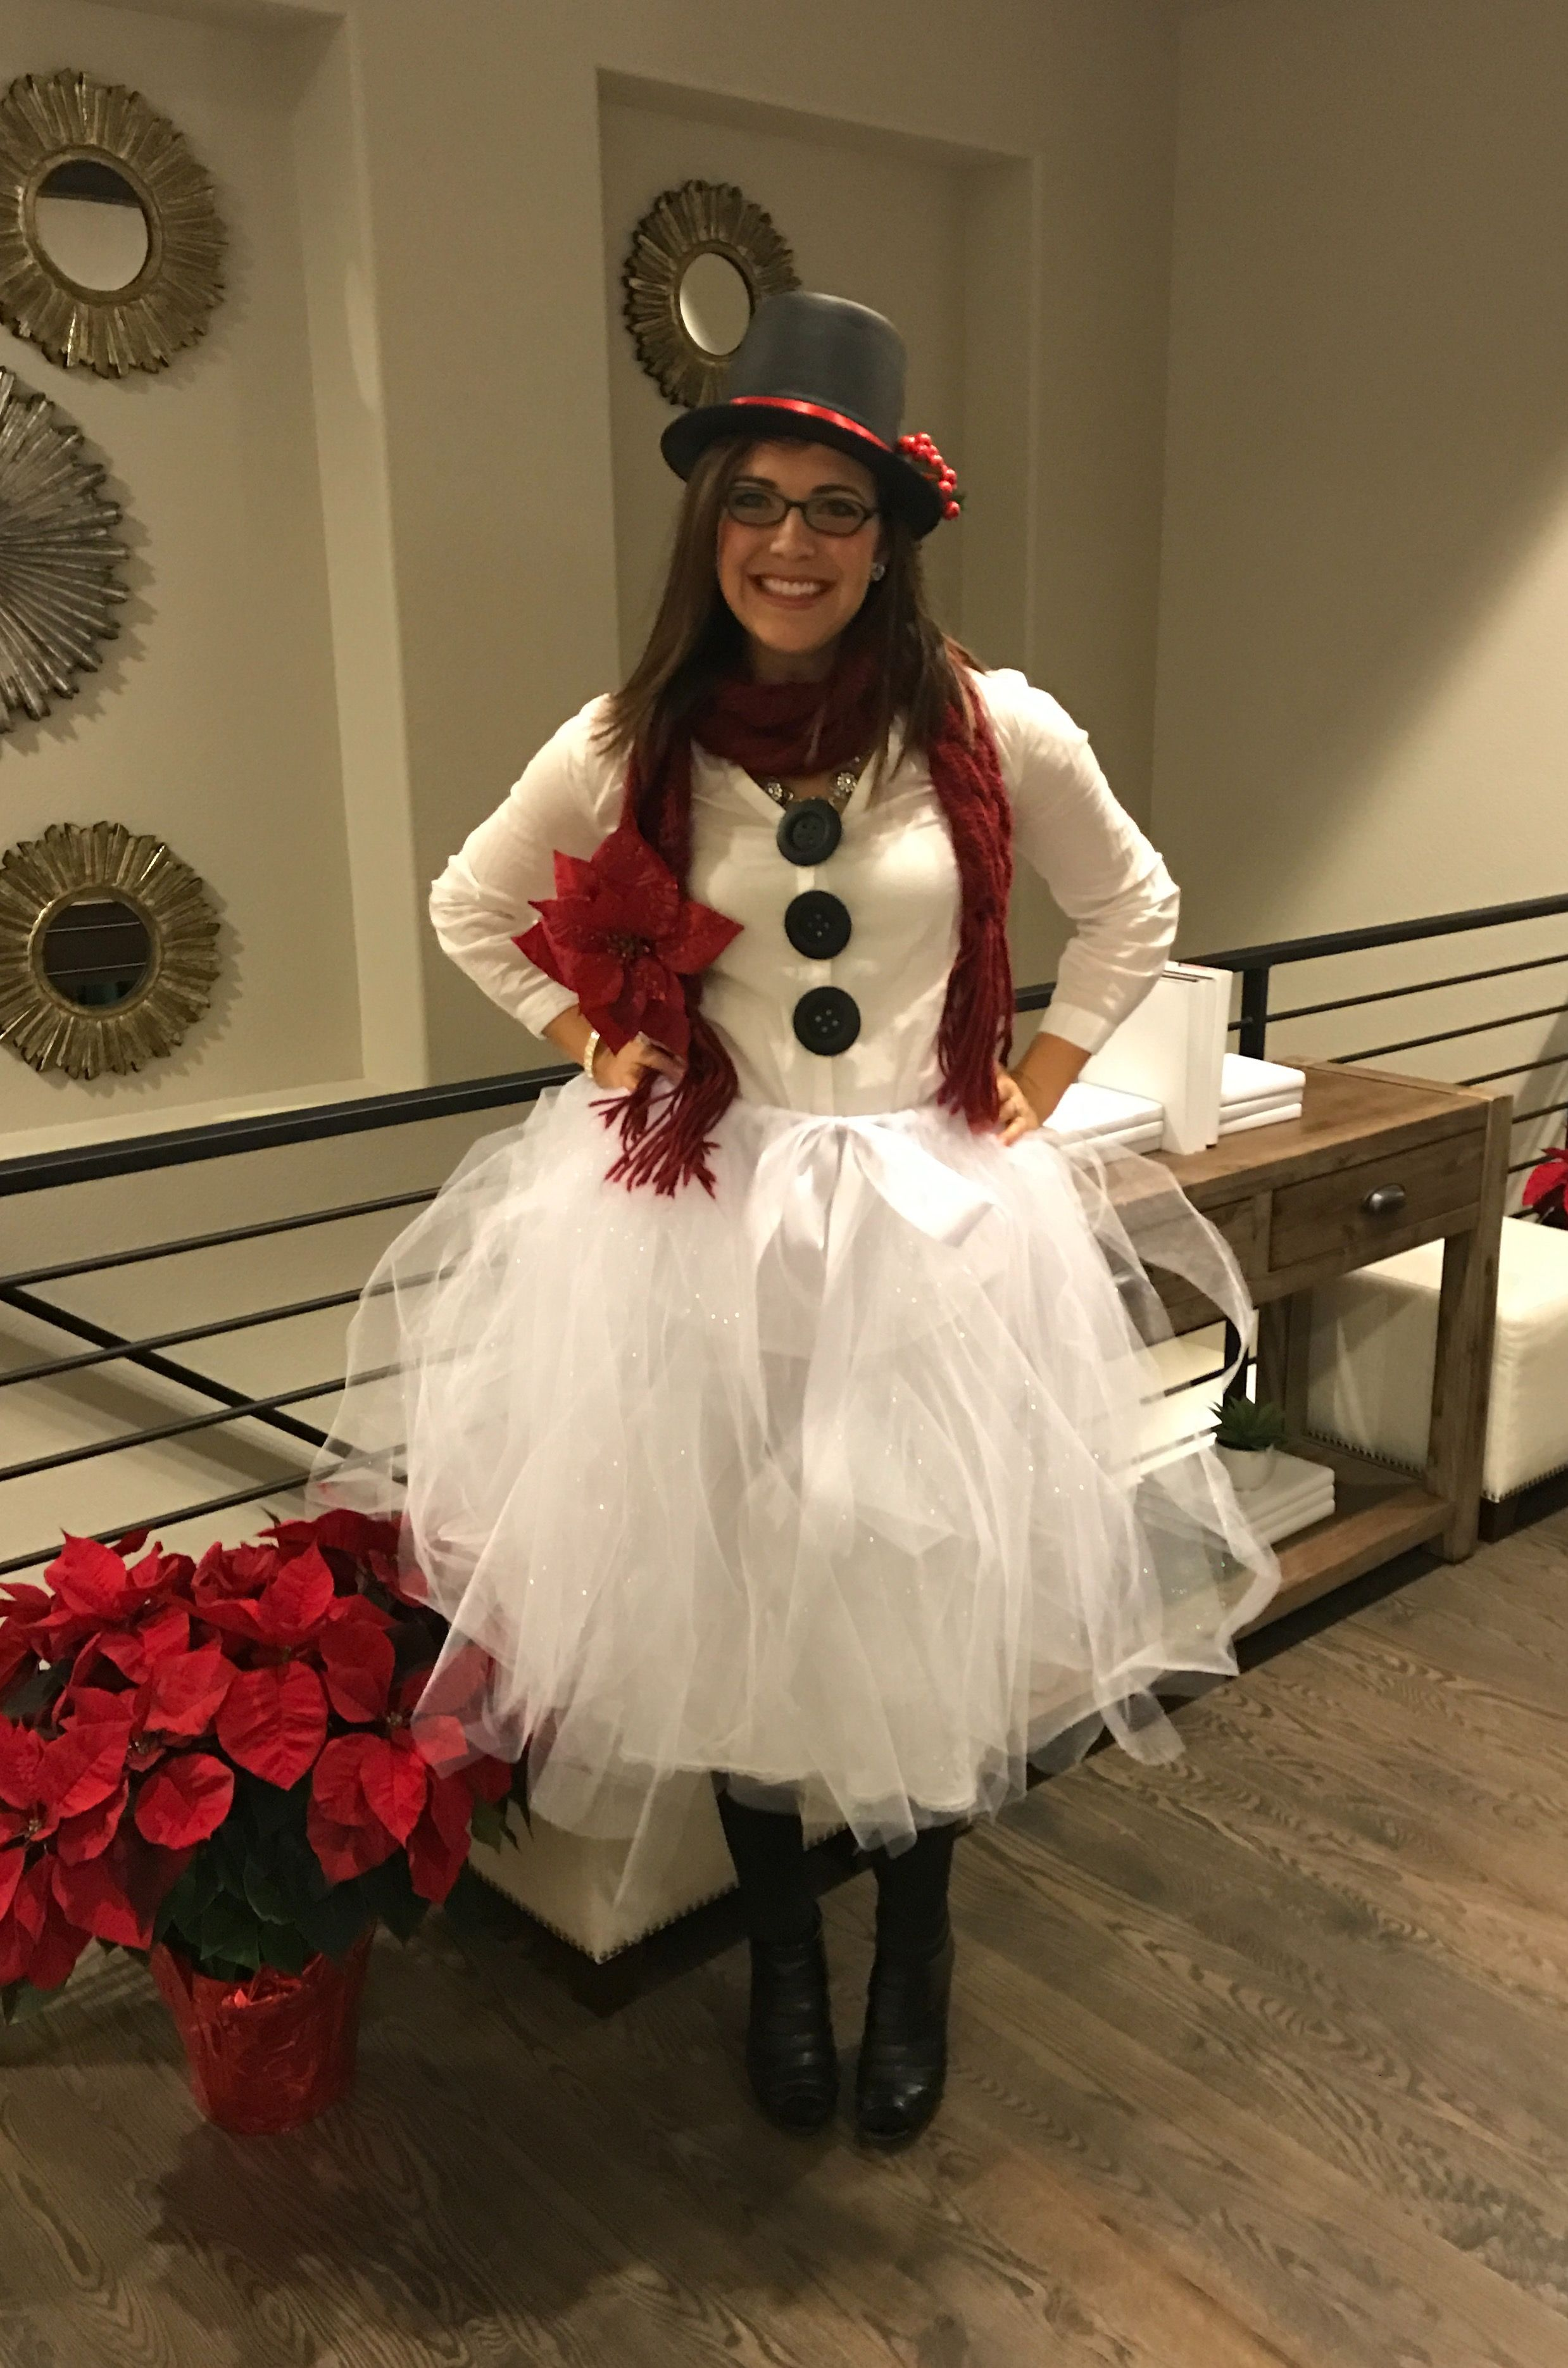 Christmas Costume Party. Homemade Snowman. Snow-woman